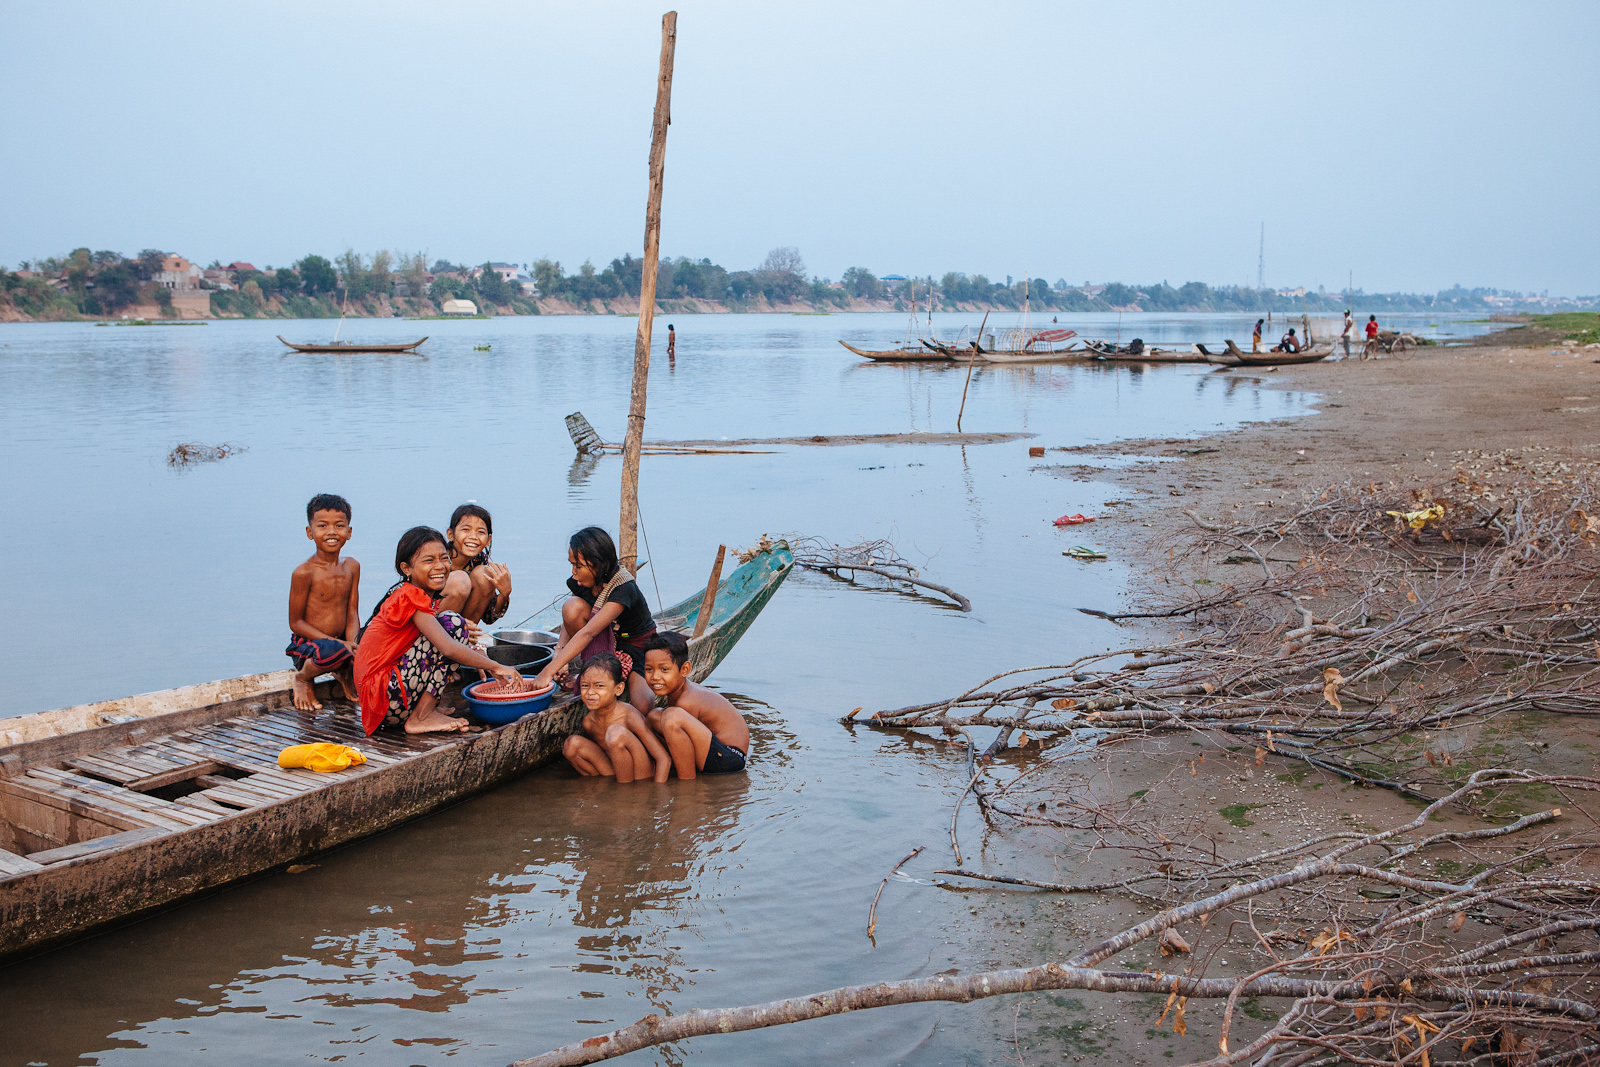 Community children in a riverside village play and do chores at dusk.